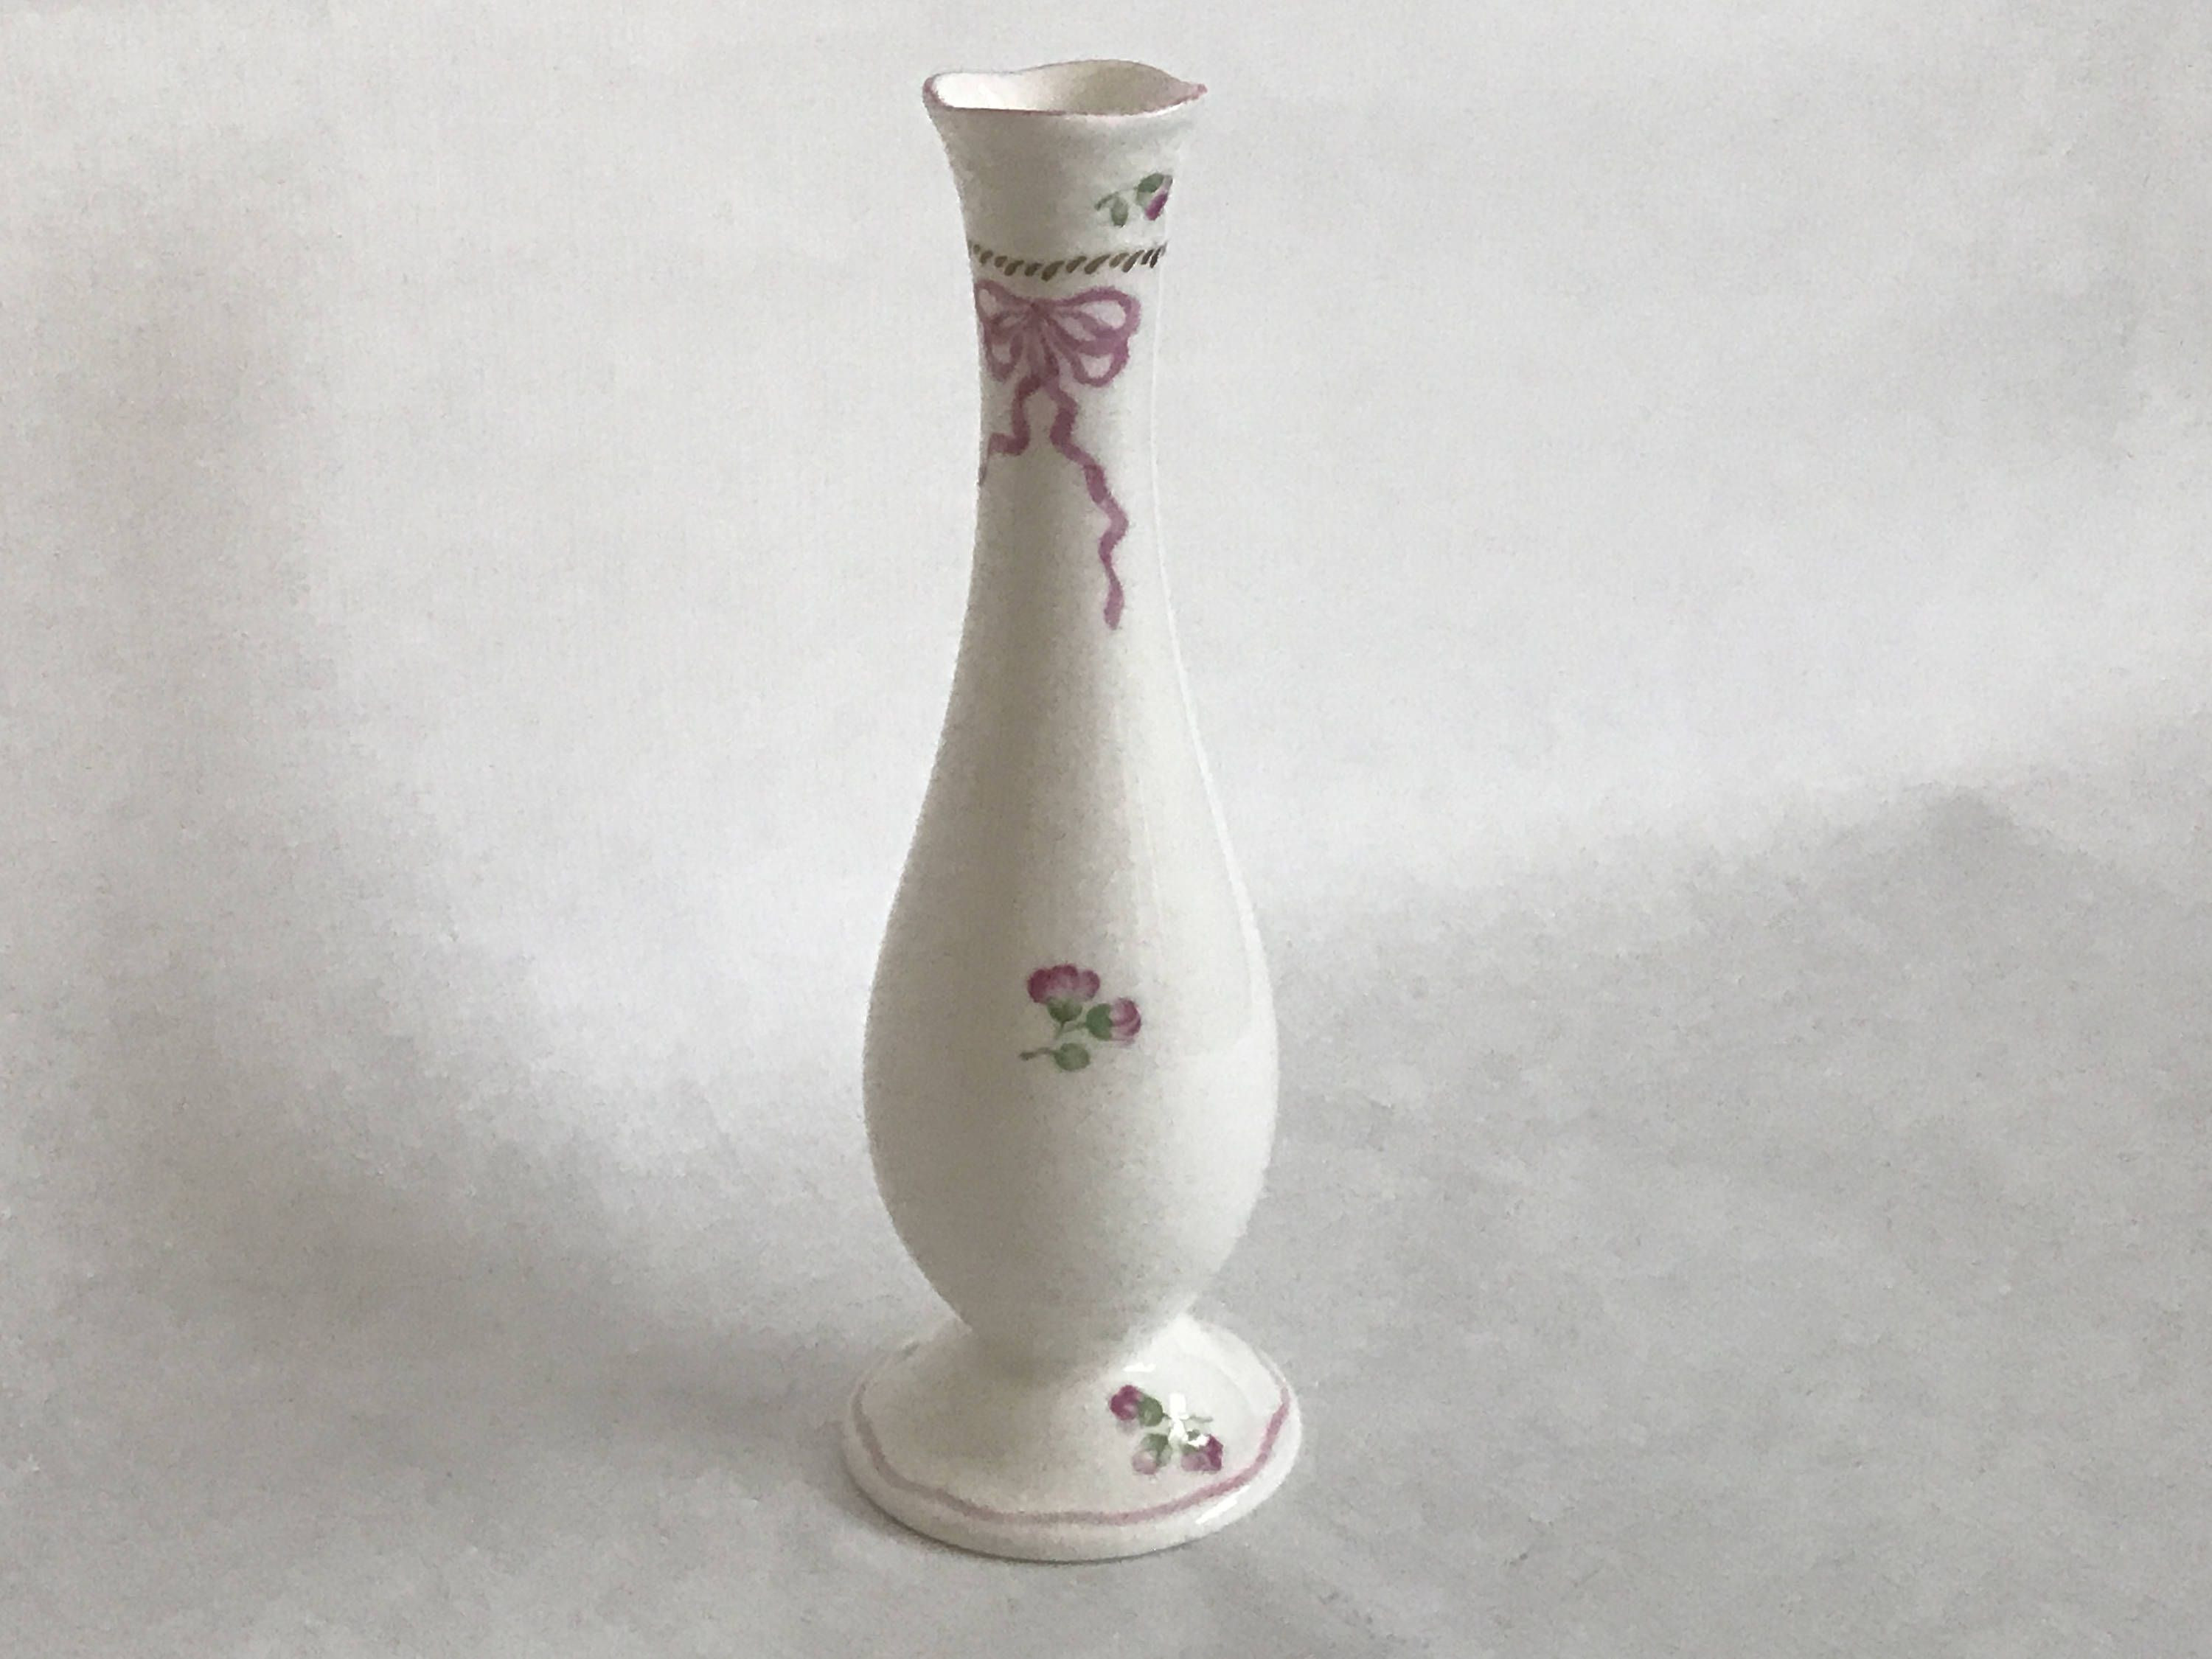 lenox fine crystal vase of lenox china bud vase vintage lenox white porcelain bud vase with with lenox china bud vase vintage lenox white porcelain bud vase with 24k pink trim